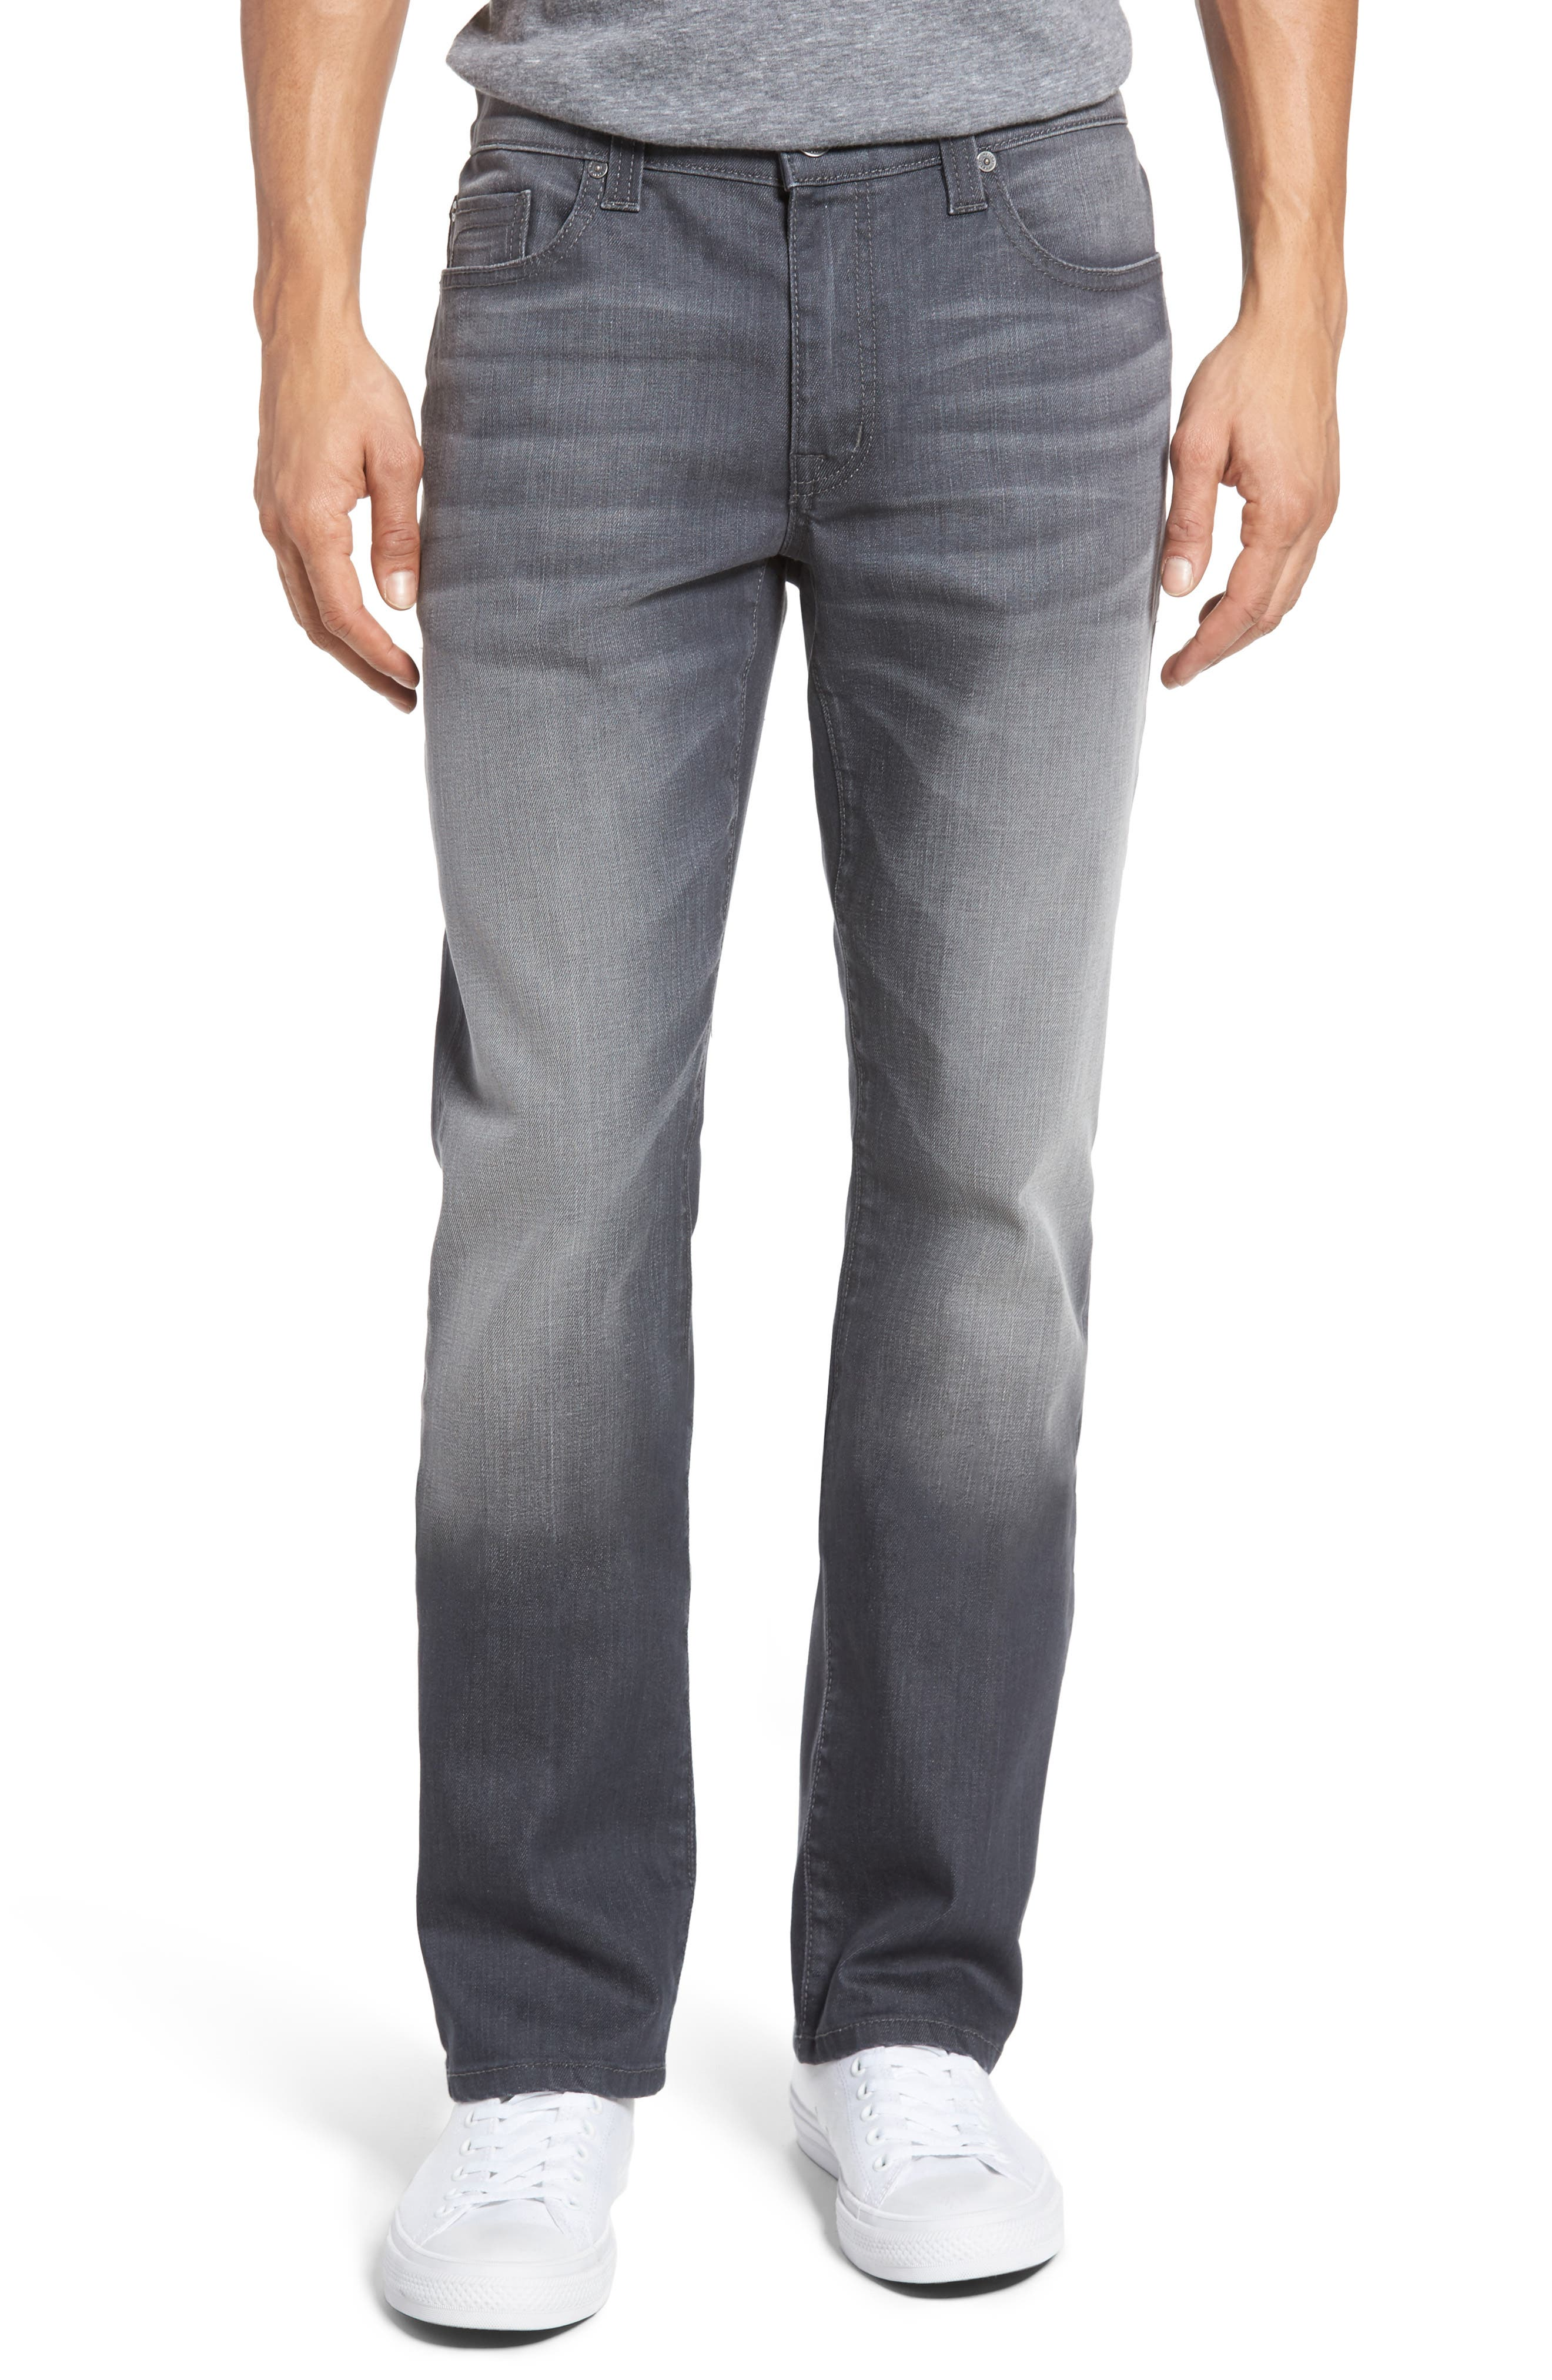 Impala Straight Leg Jeans,                             Main thumbnail 1, color,                             010